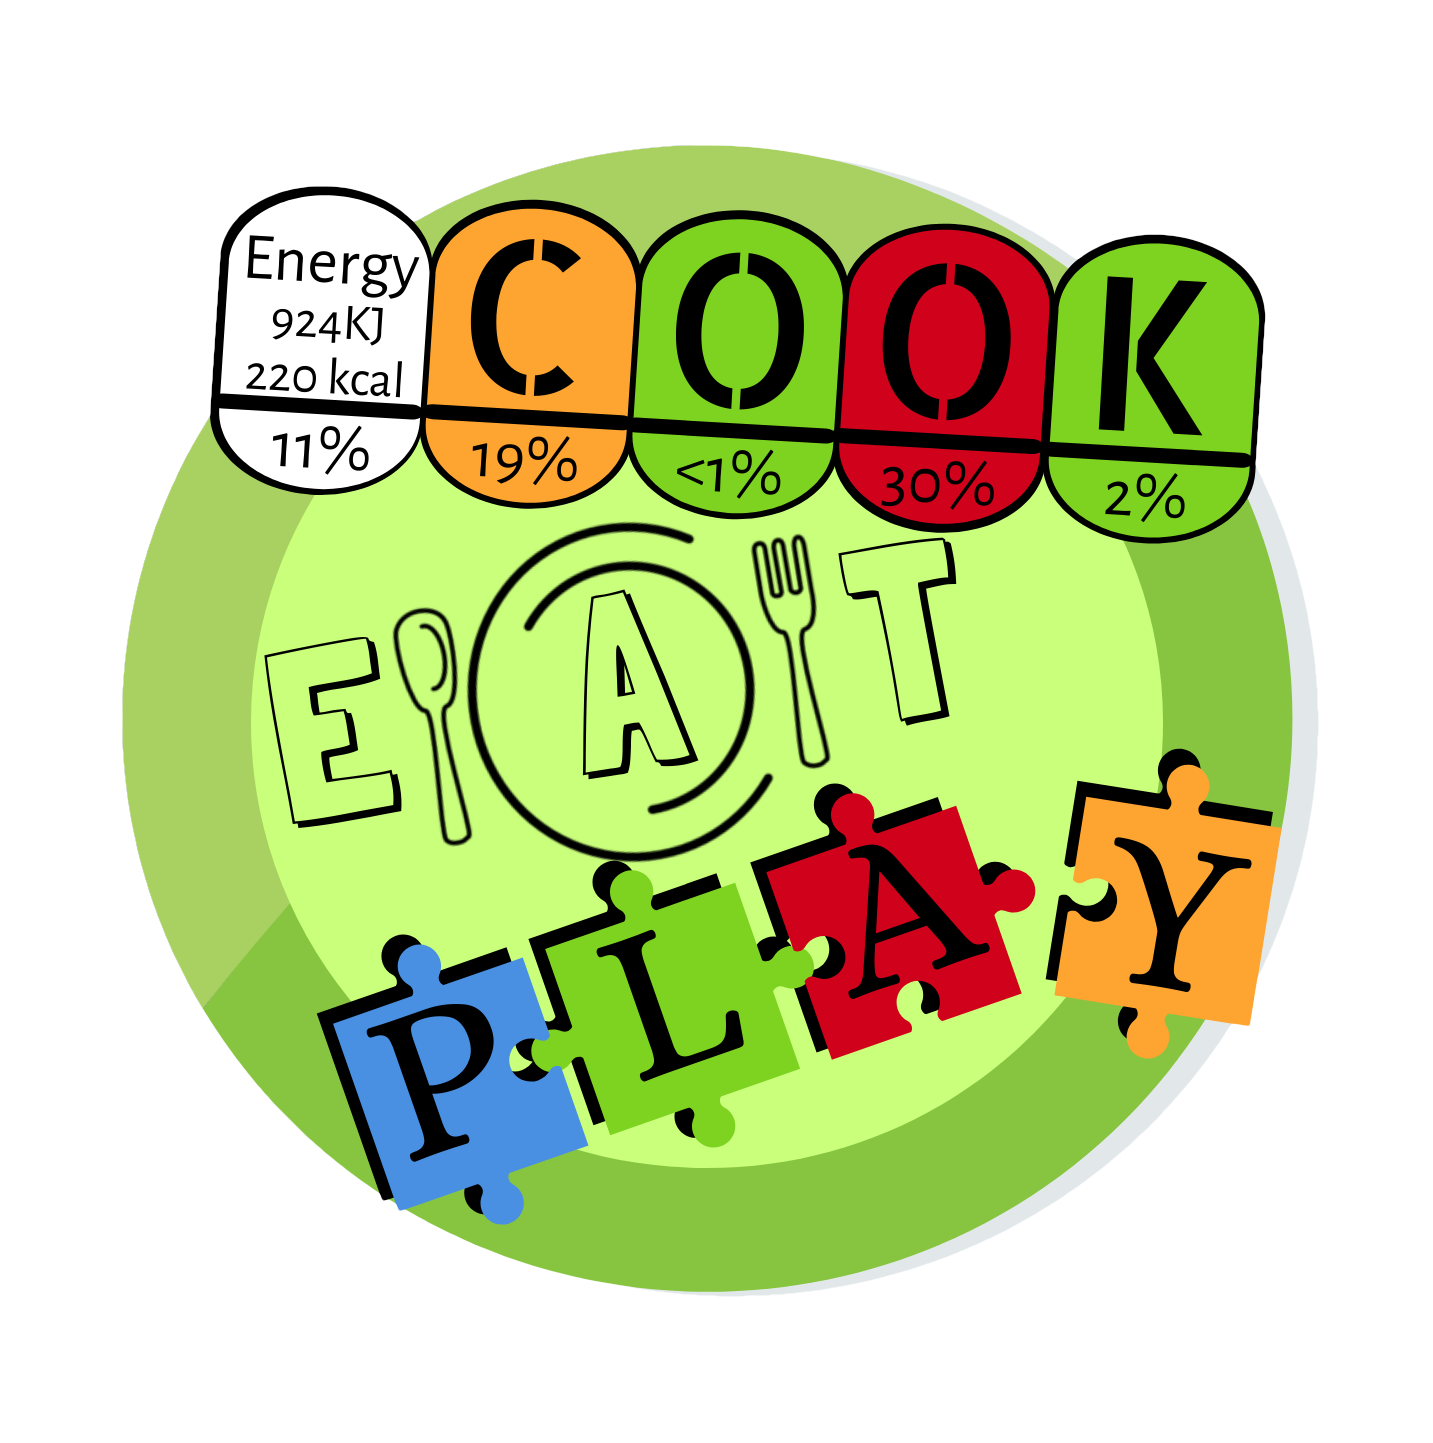 Cook Eat Play